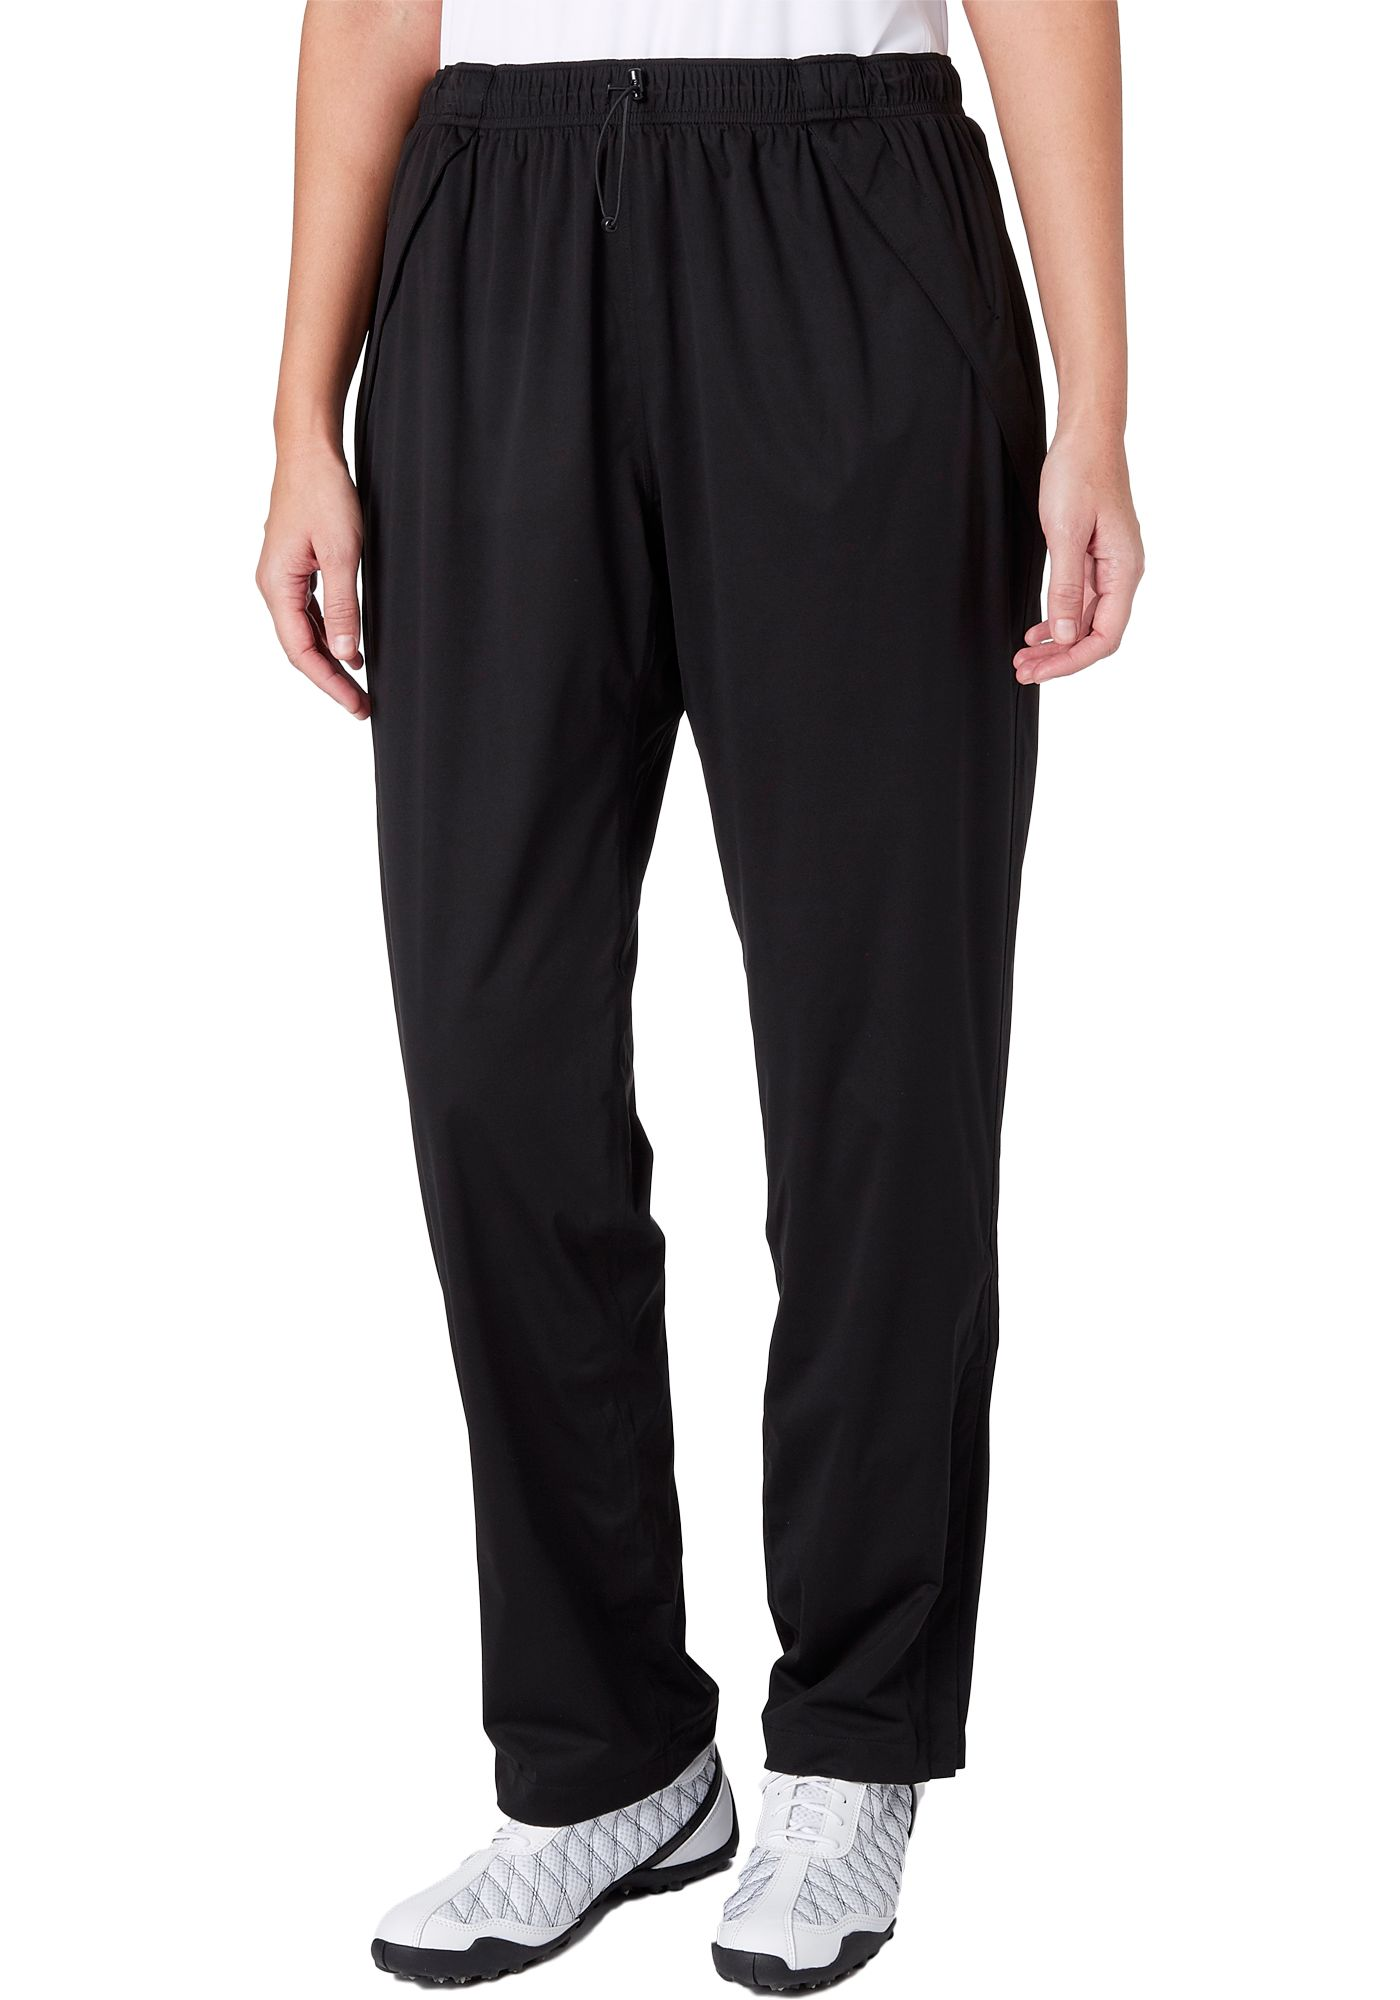 Lady Hagen Women's Best Golf Rain Pants